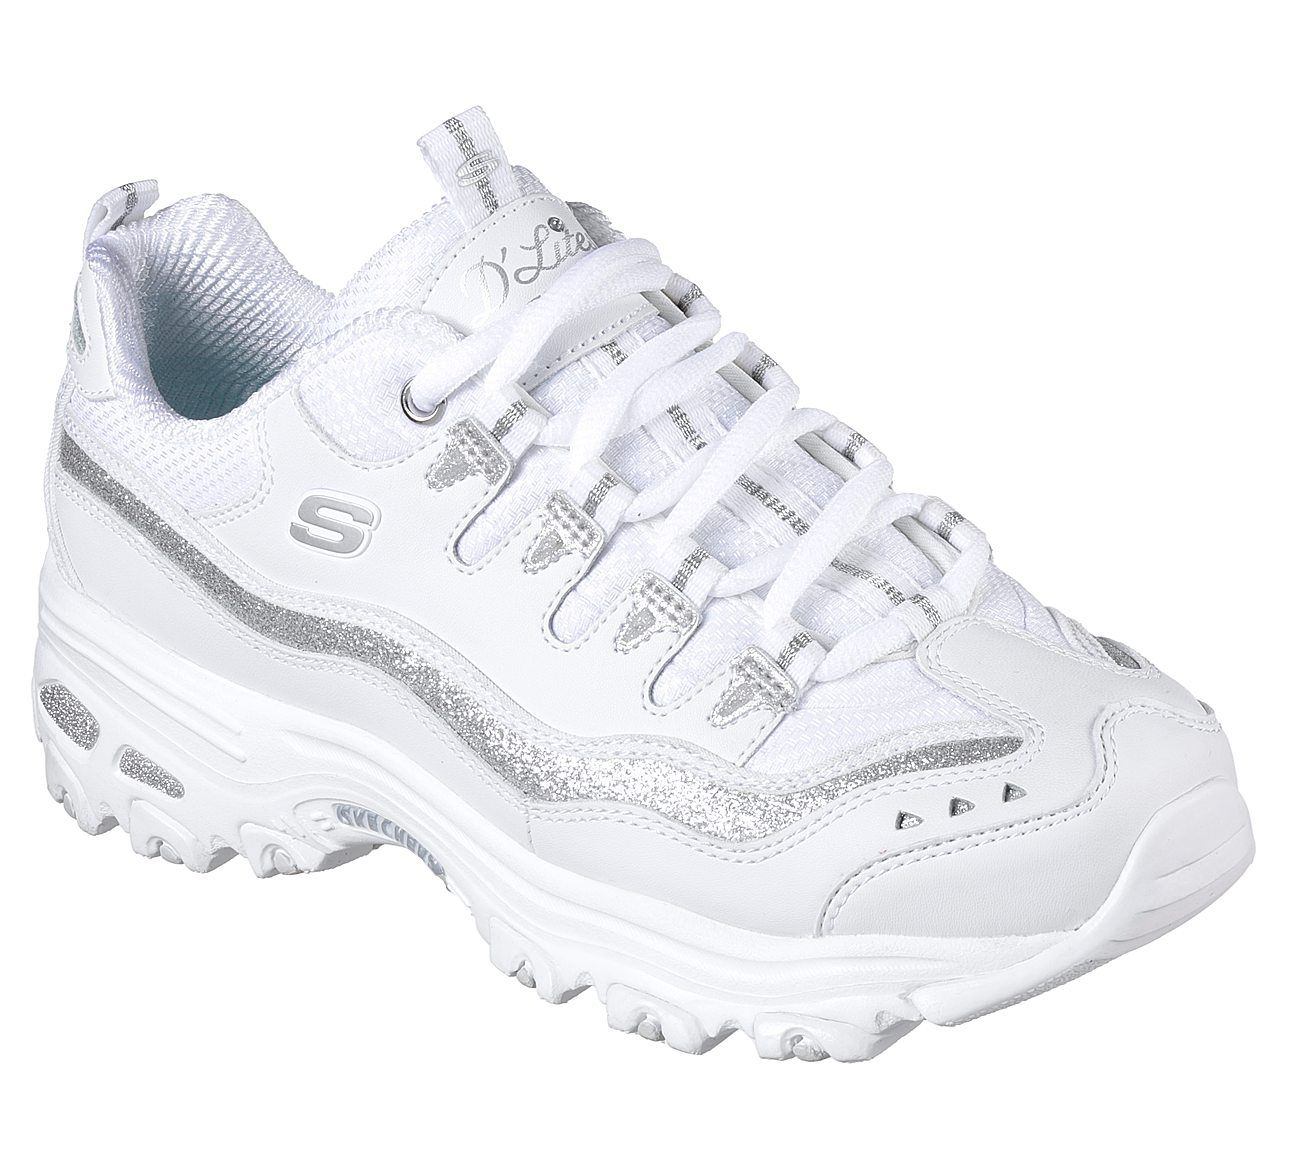 super specials online here running shoes D'Lites - Now and Then | Skechers, Sneakers, Fashion shoes